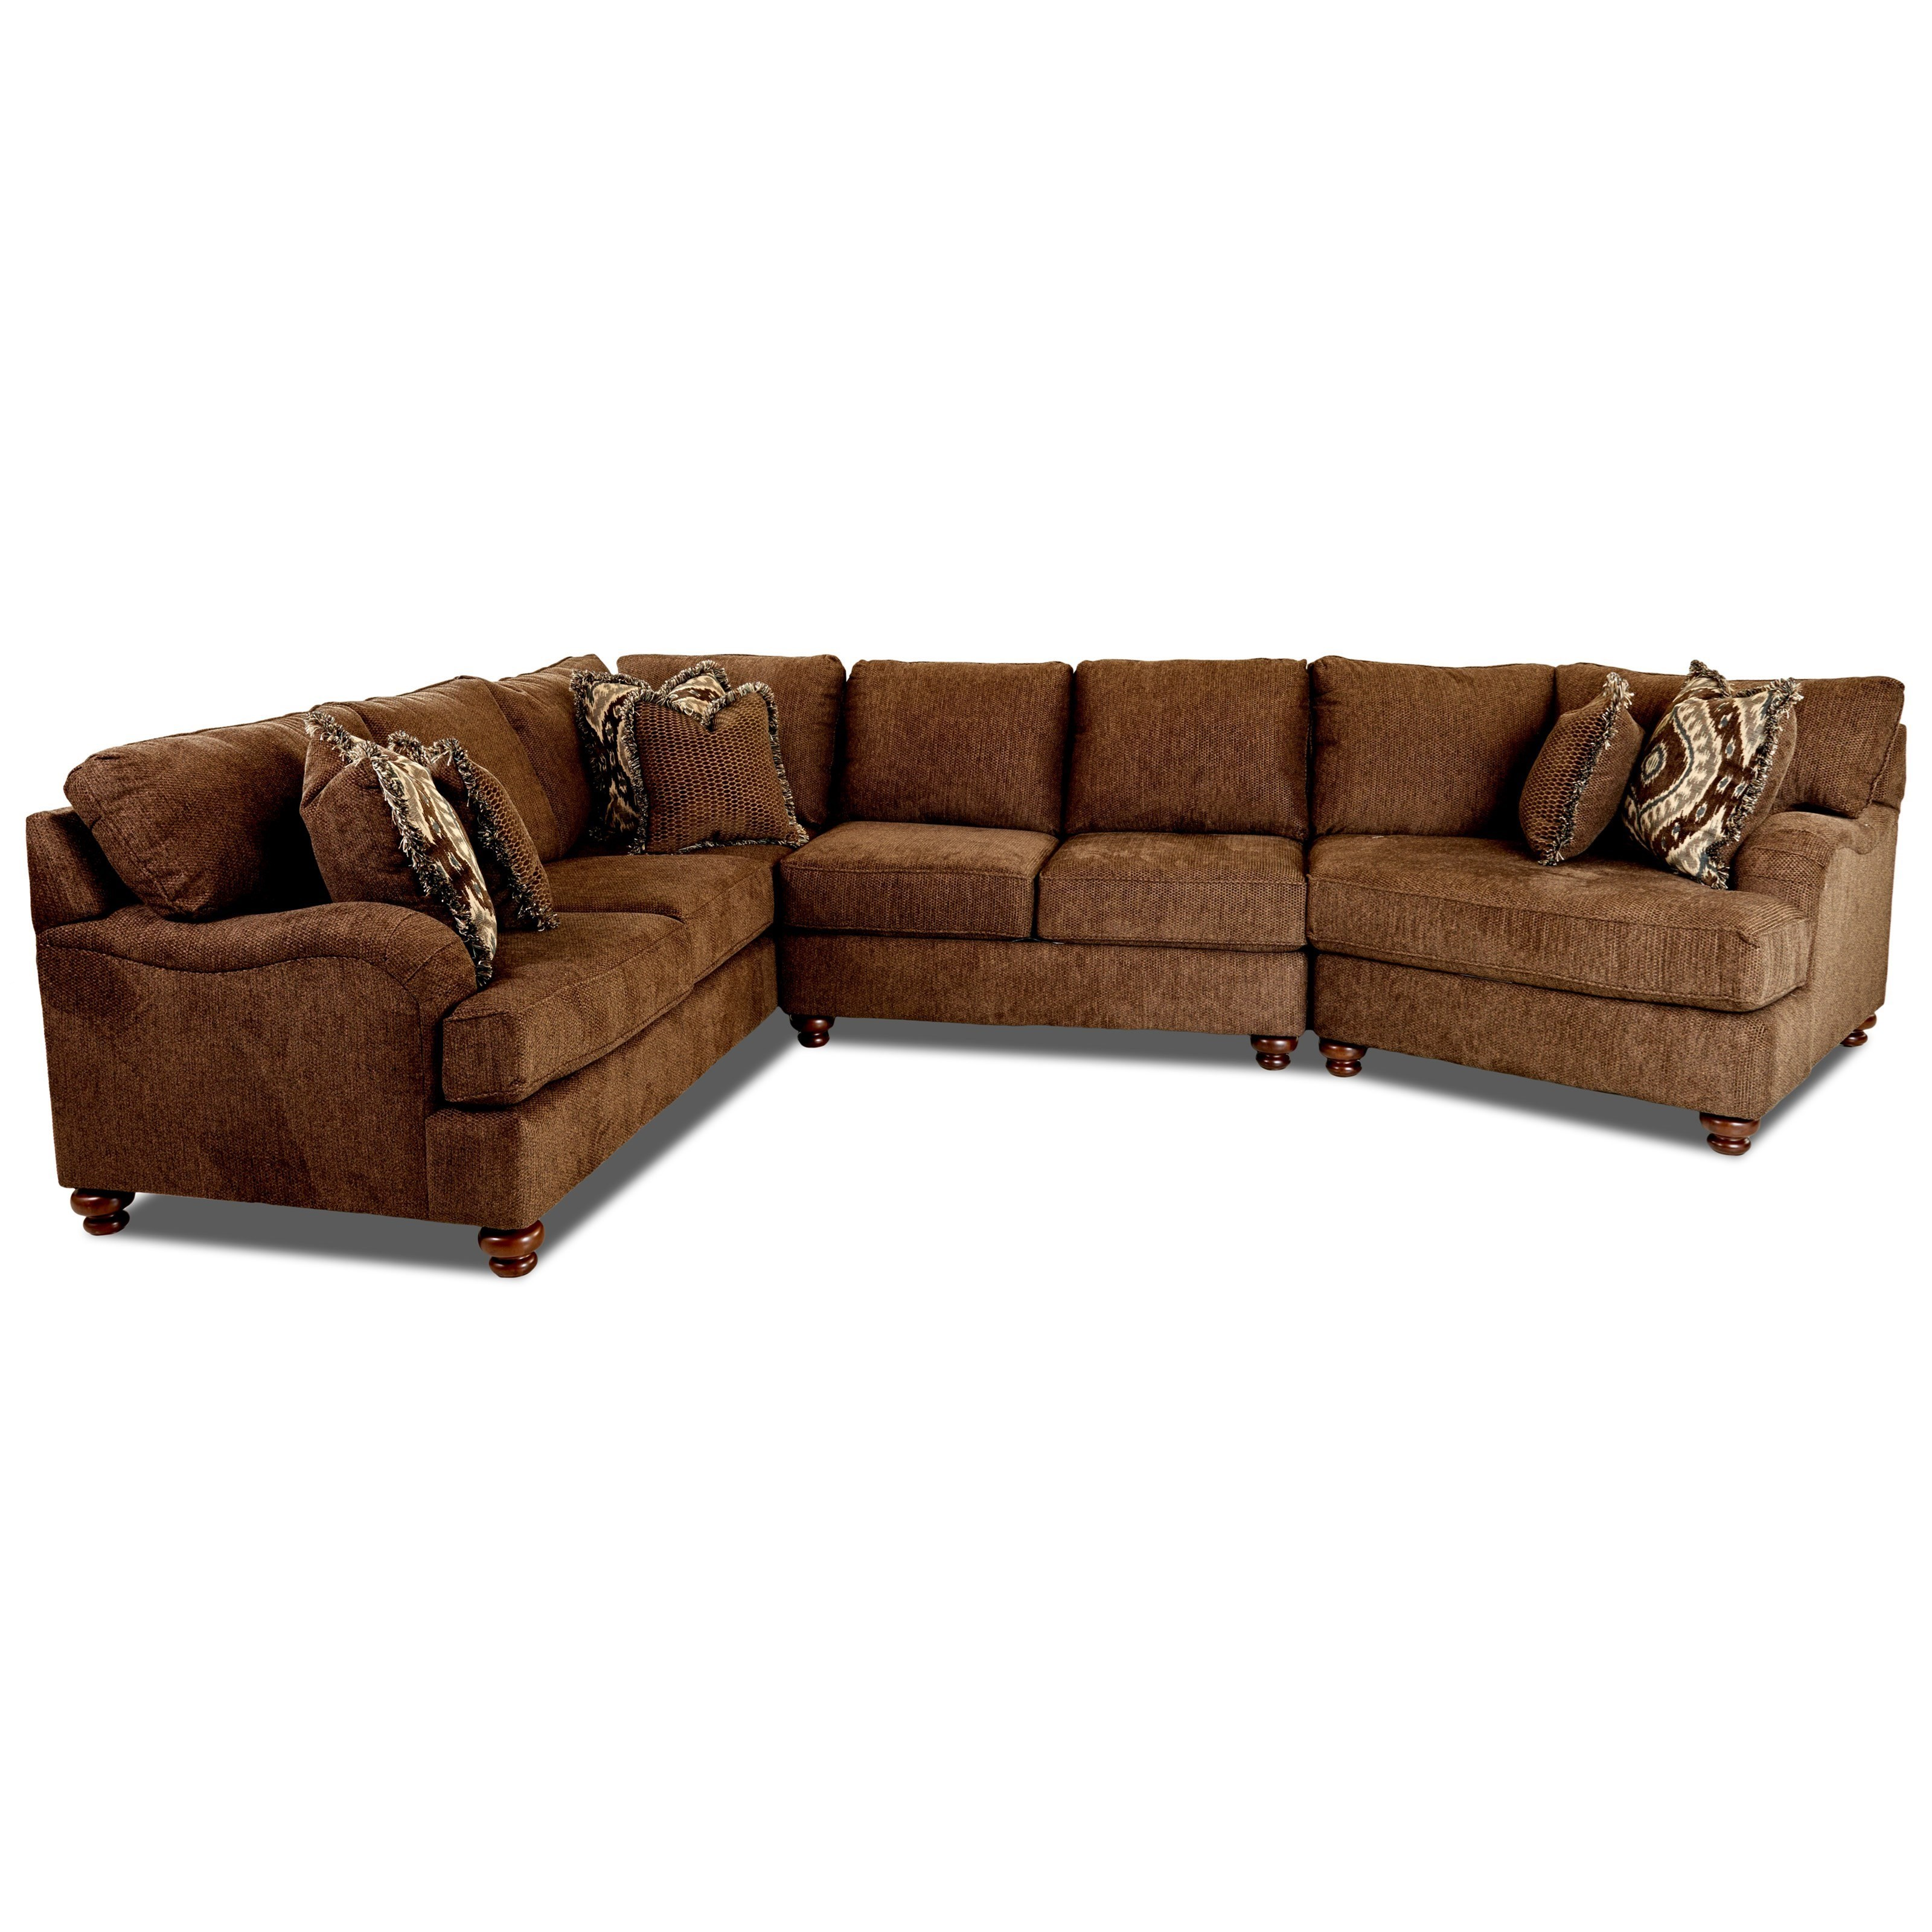 Klaussner Declan 3 Pc Sectional Sofa